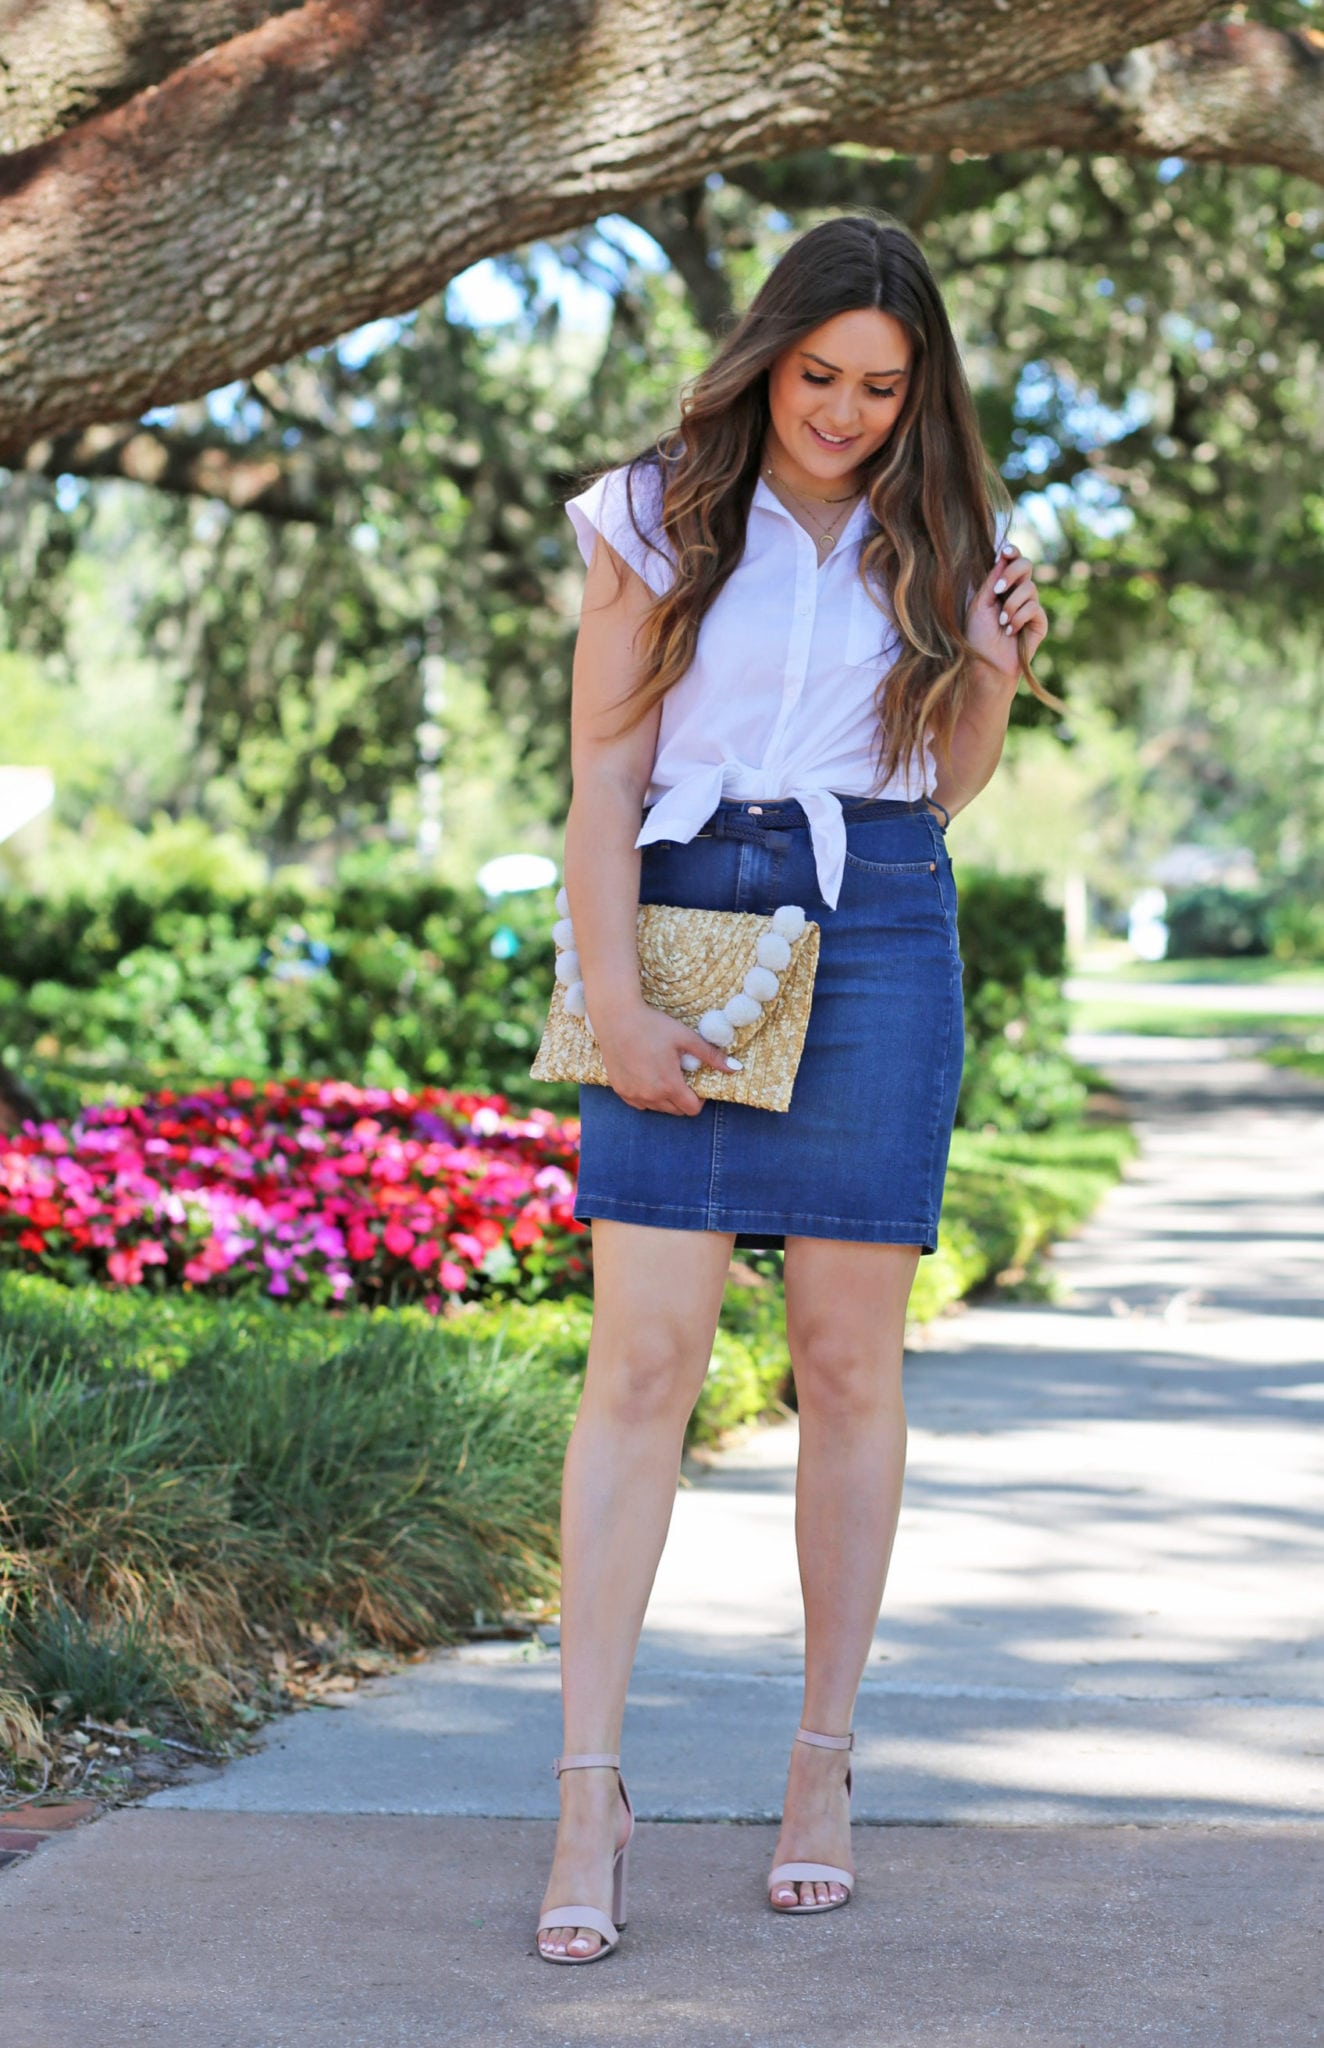 Beauty blogger Mash Elle | popular Orlando blogger | how to style a denim skirt outfit | tulip flowers | white top | Florida spring fashion